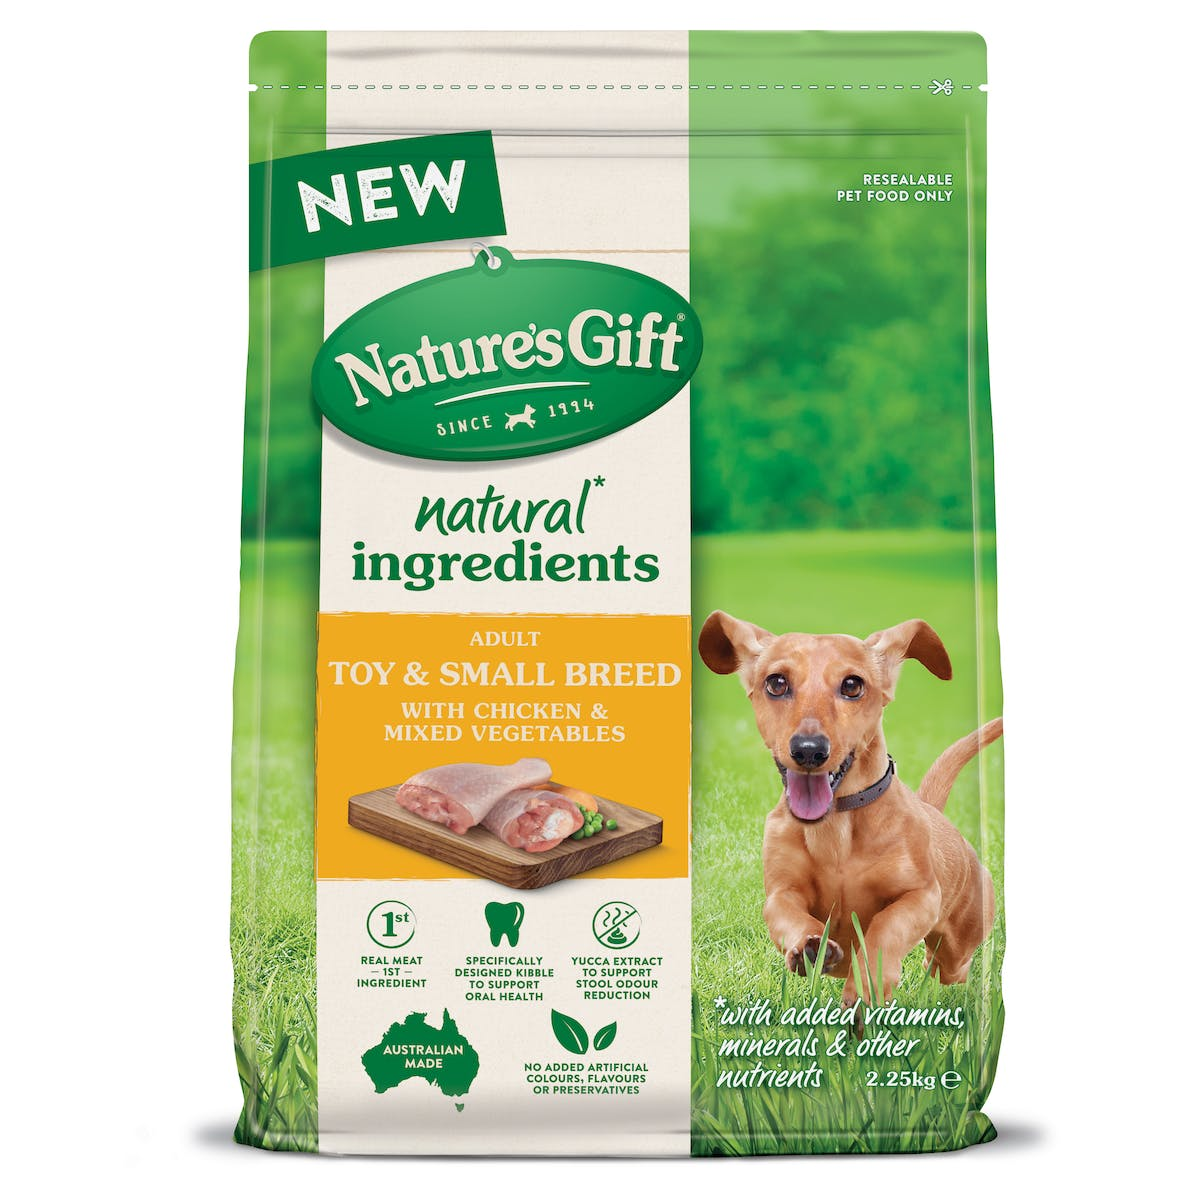 Nature's Gift | Toy & Small Breed with Chicken & Mixed Vegetables | Dry dog food | Front of pack